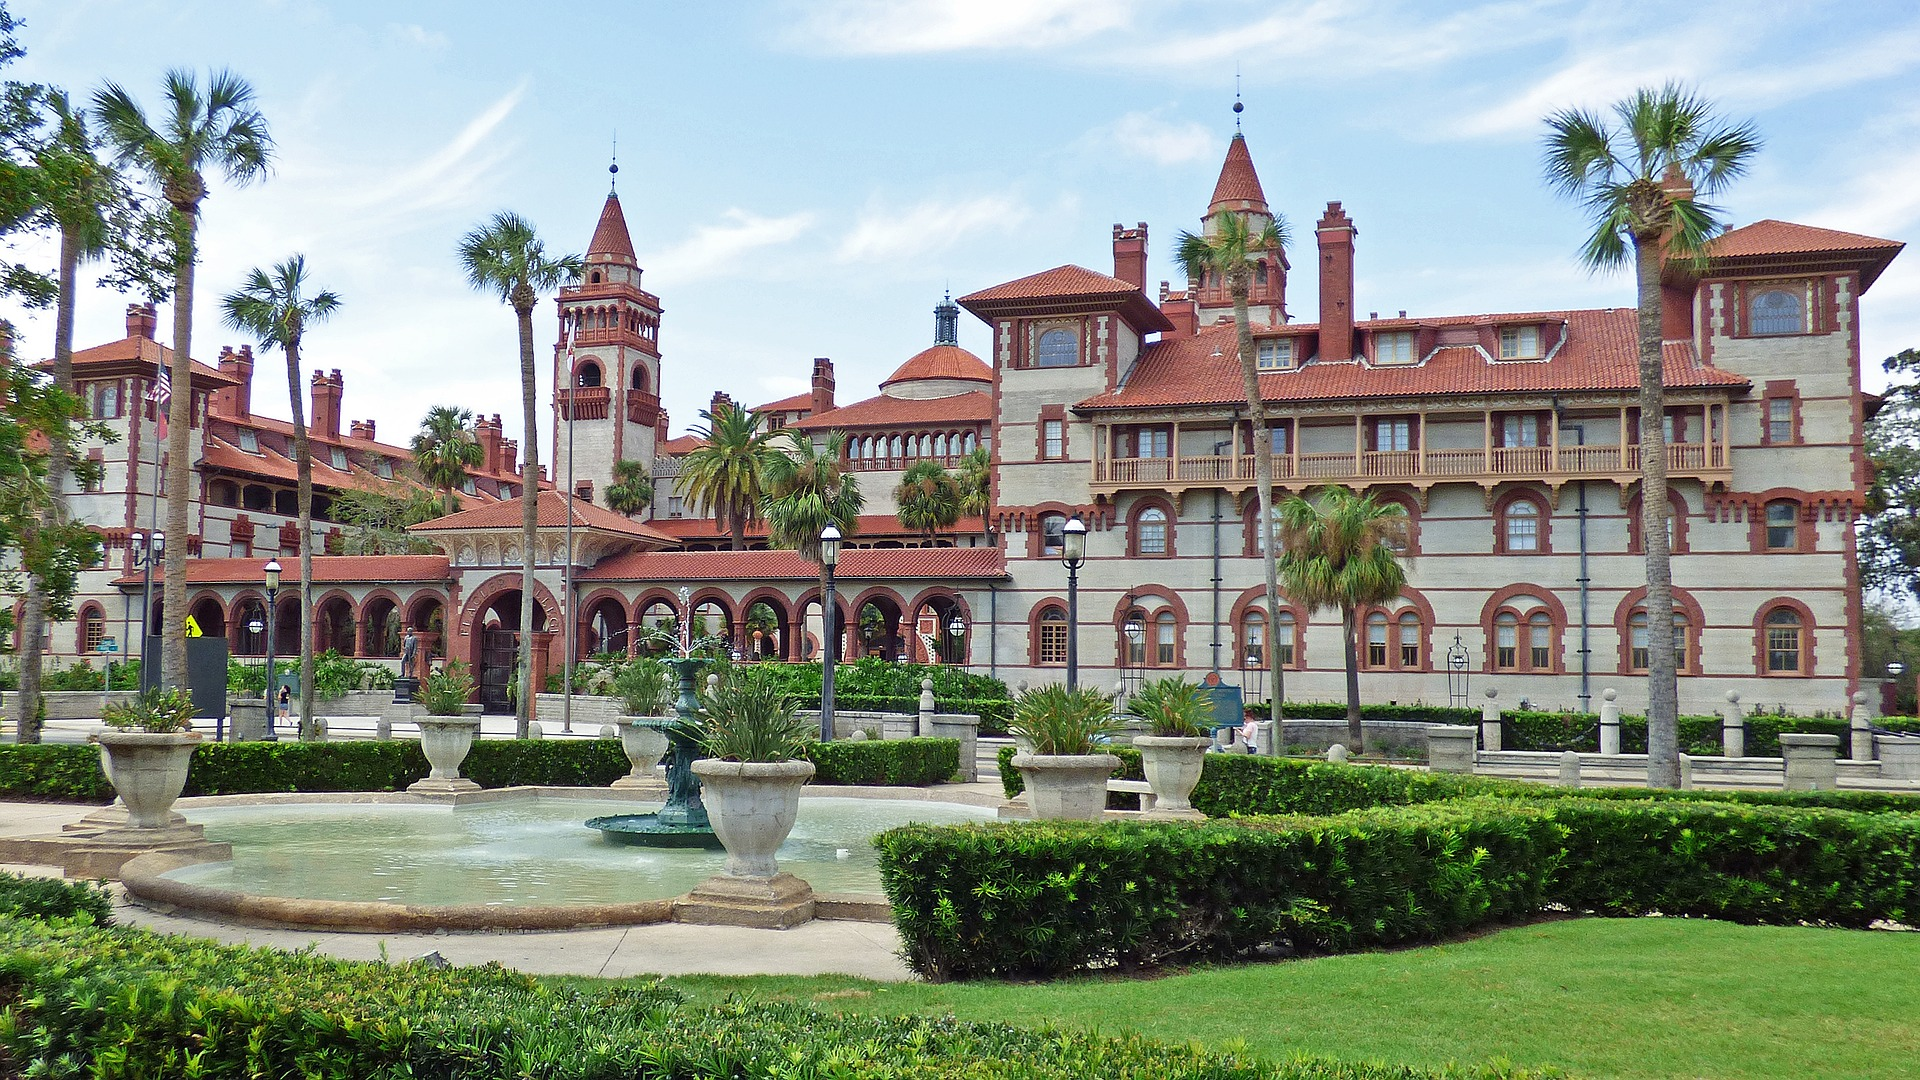 St. Augustine - Historic City To Flock To In Florida